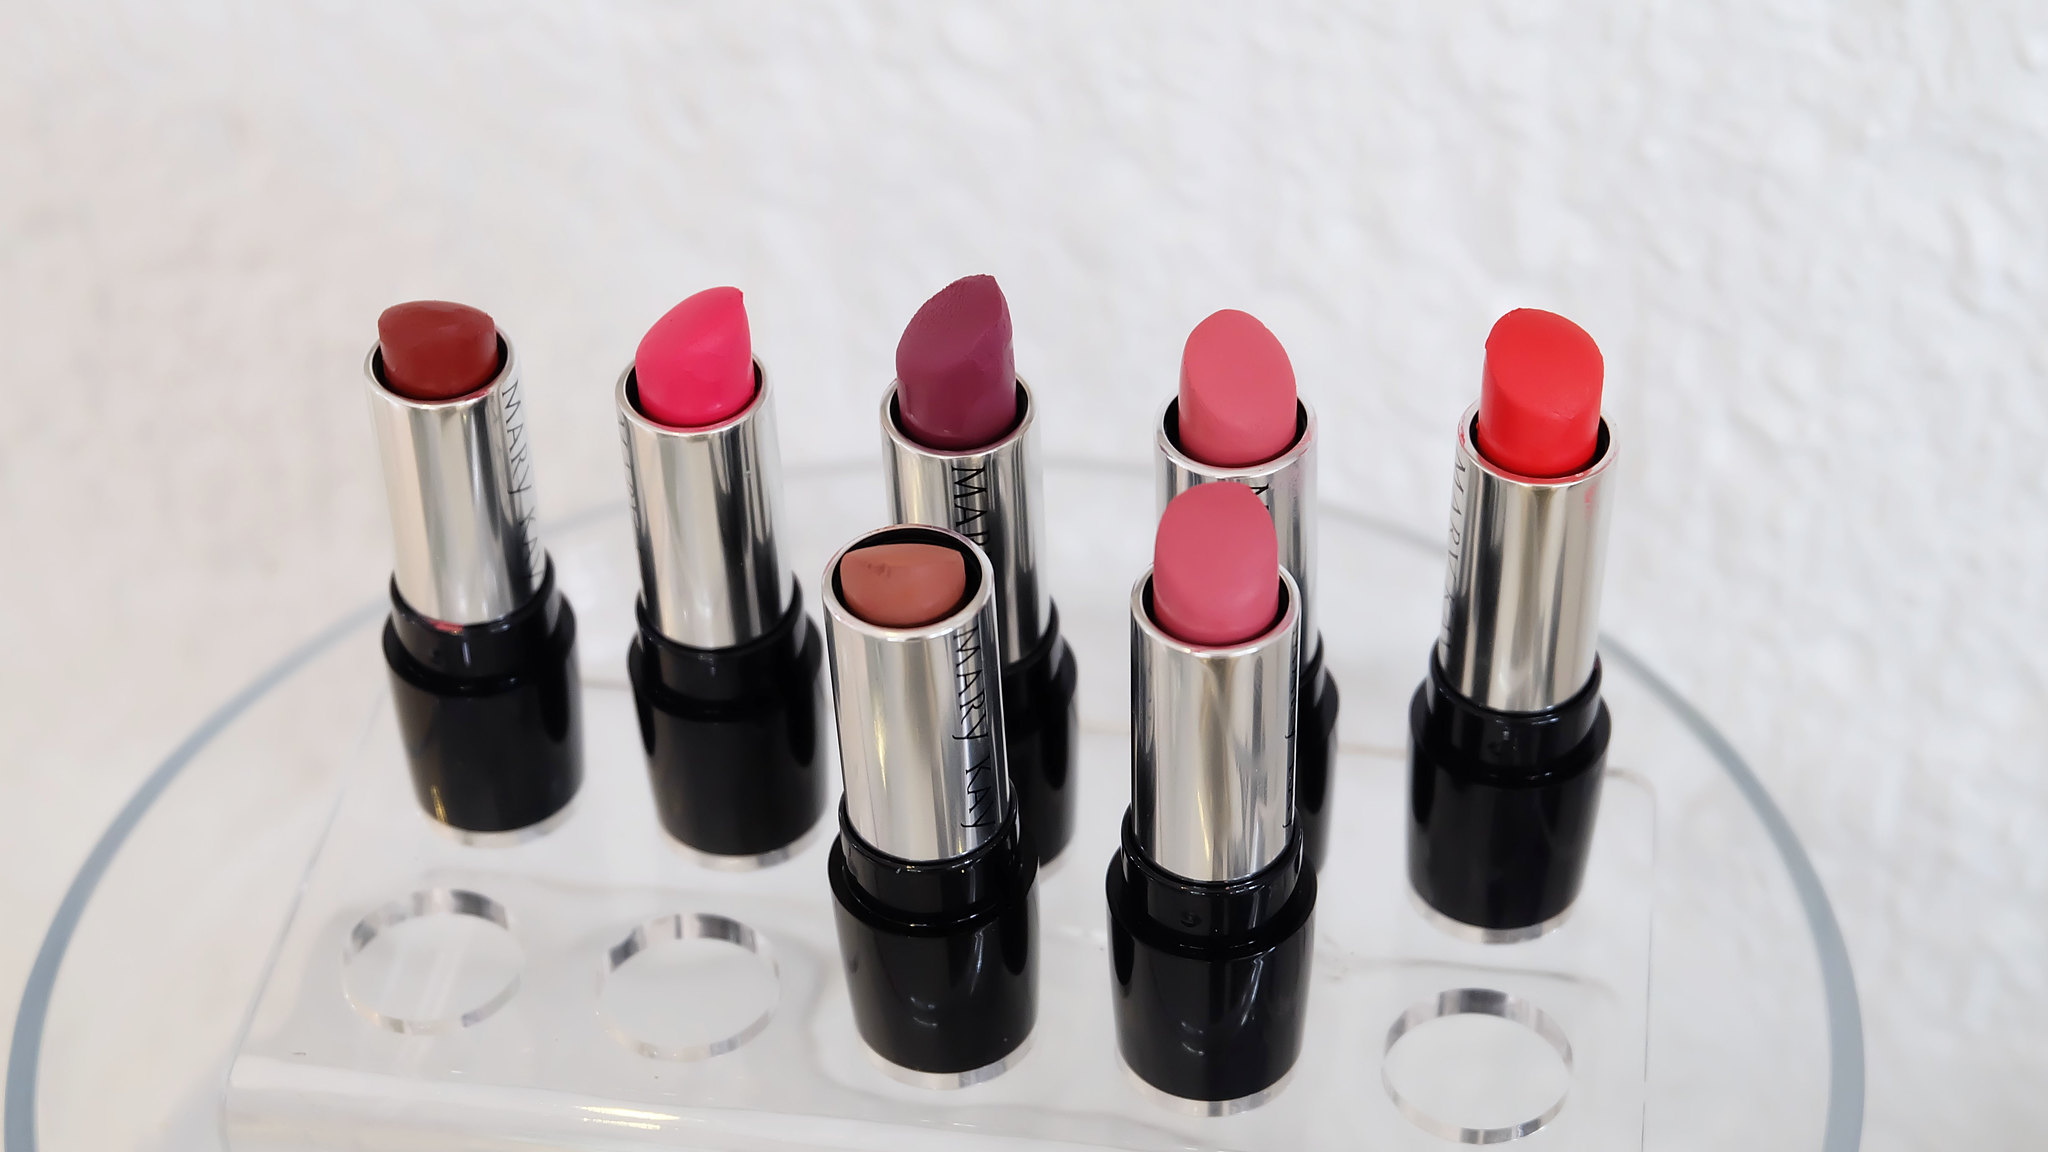 newest mary kay semi-matte gel lipsticks